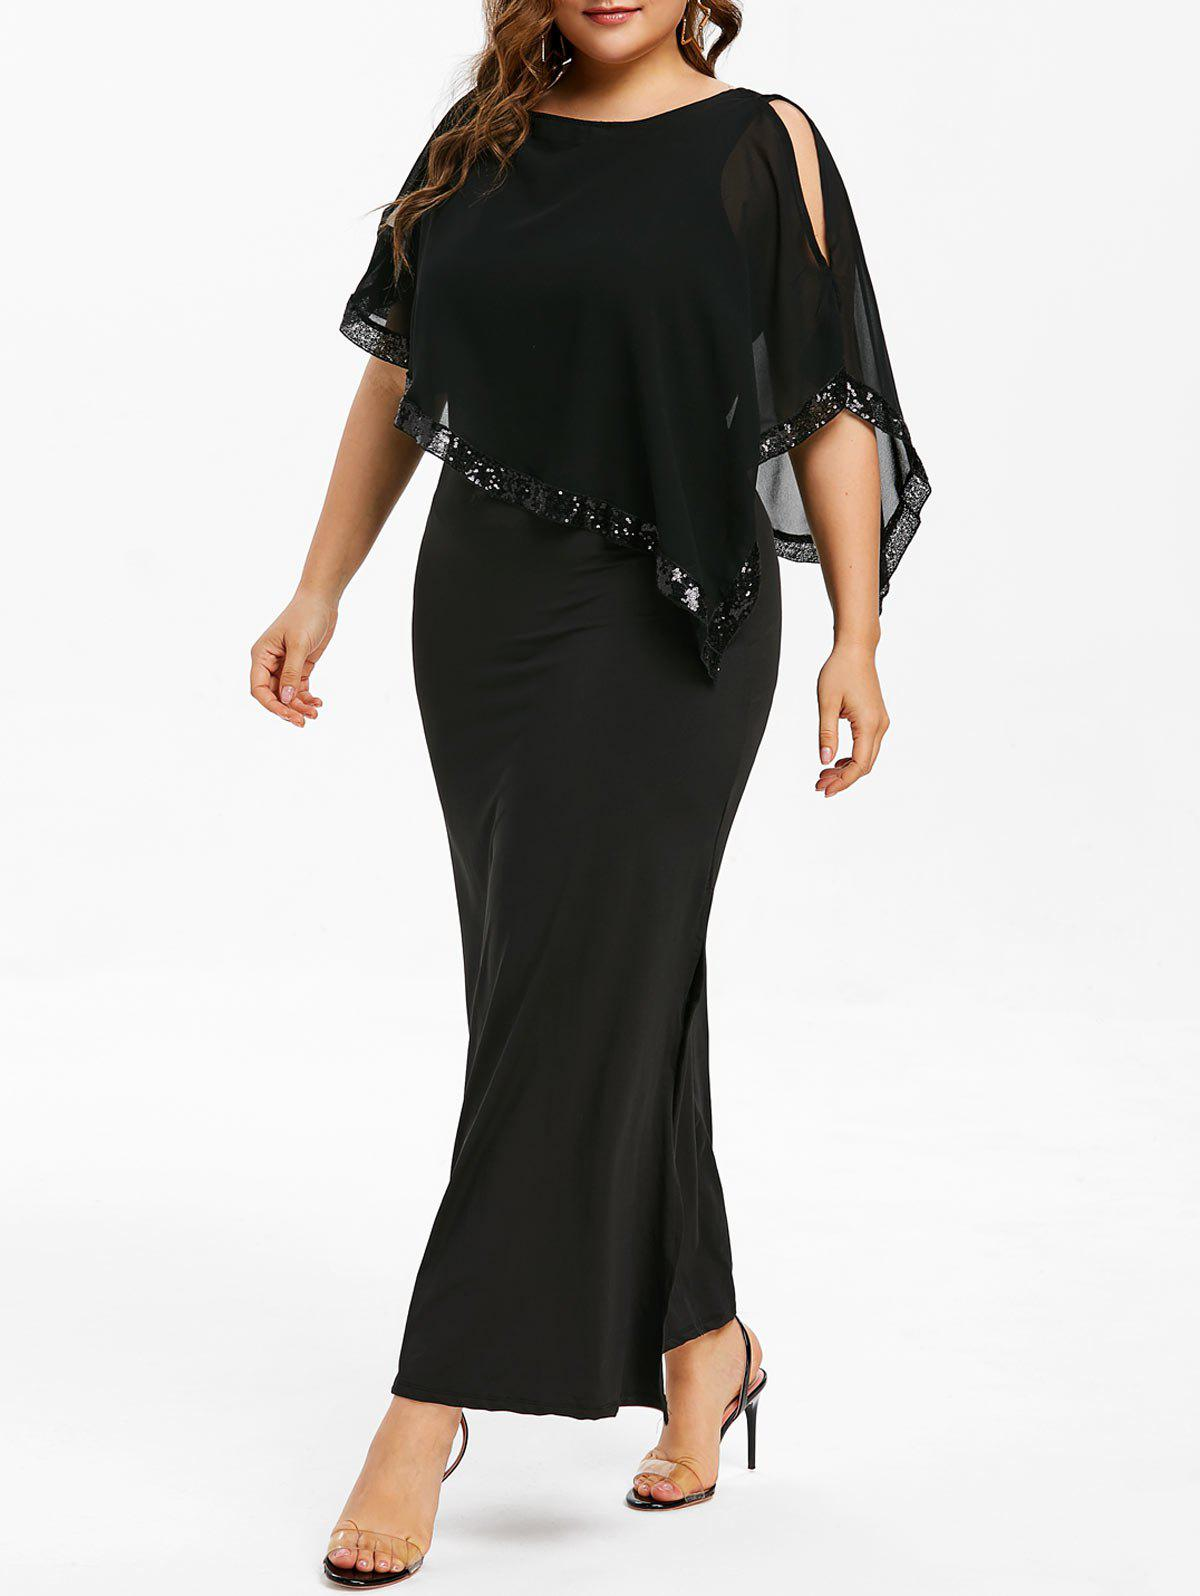 33% OFF] Plus Size Sequin Embellished Overlay Maxi Dress | Rosegal